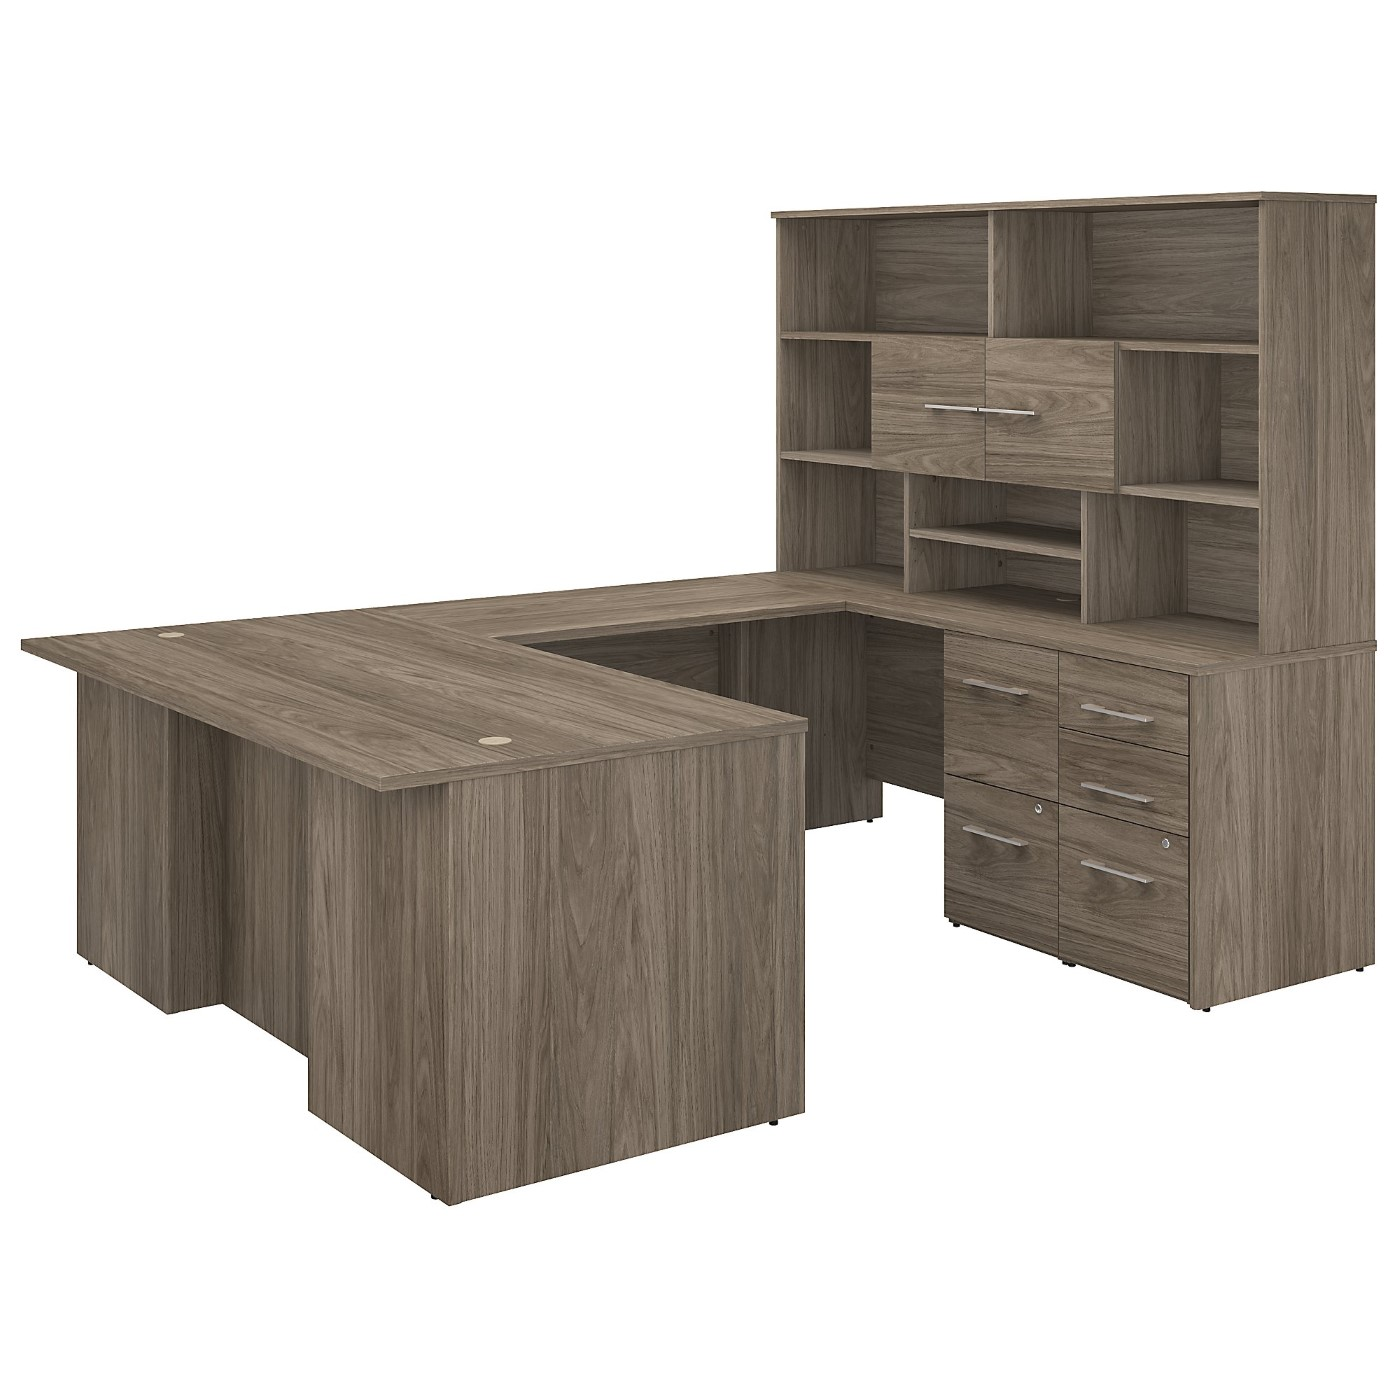 BUSH BUSINESS FURNITURE OFFICE 500 72W U SHAPED EXECUTIVE DESK WITH DRAWERS AND HUTCH. FREE SHIPPING